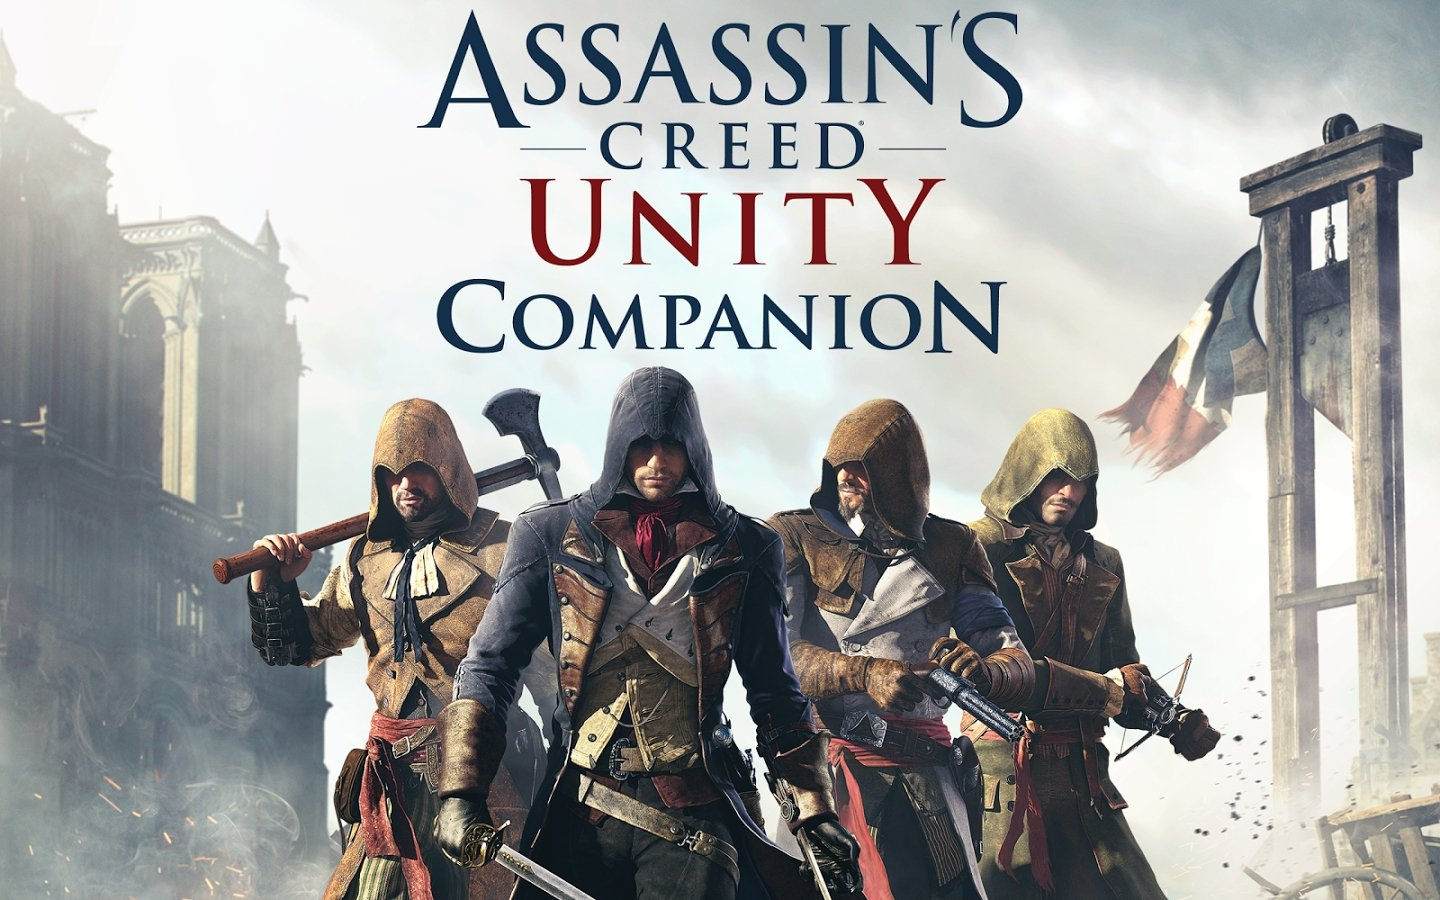 Assassin's Creed Unity Companion Android image 5